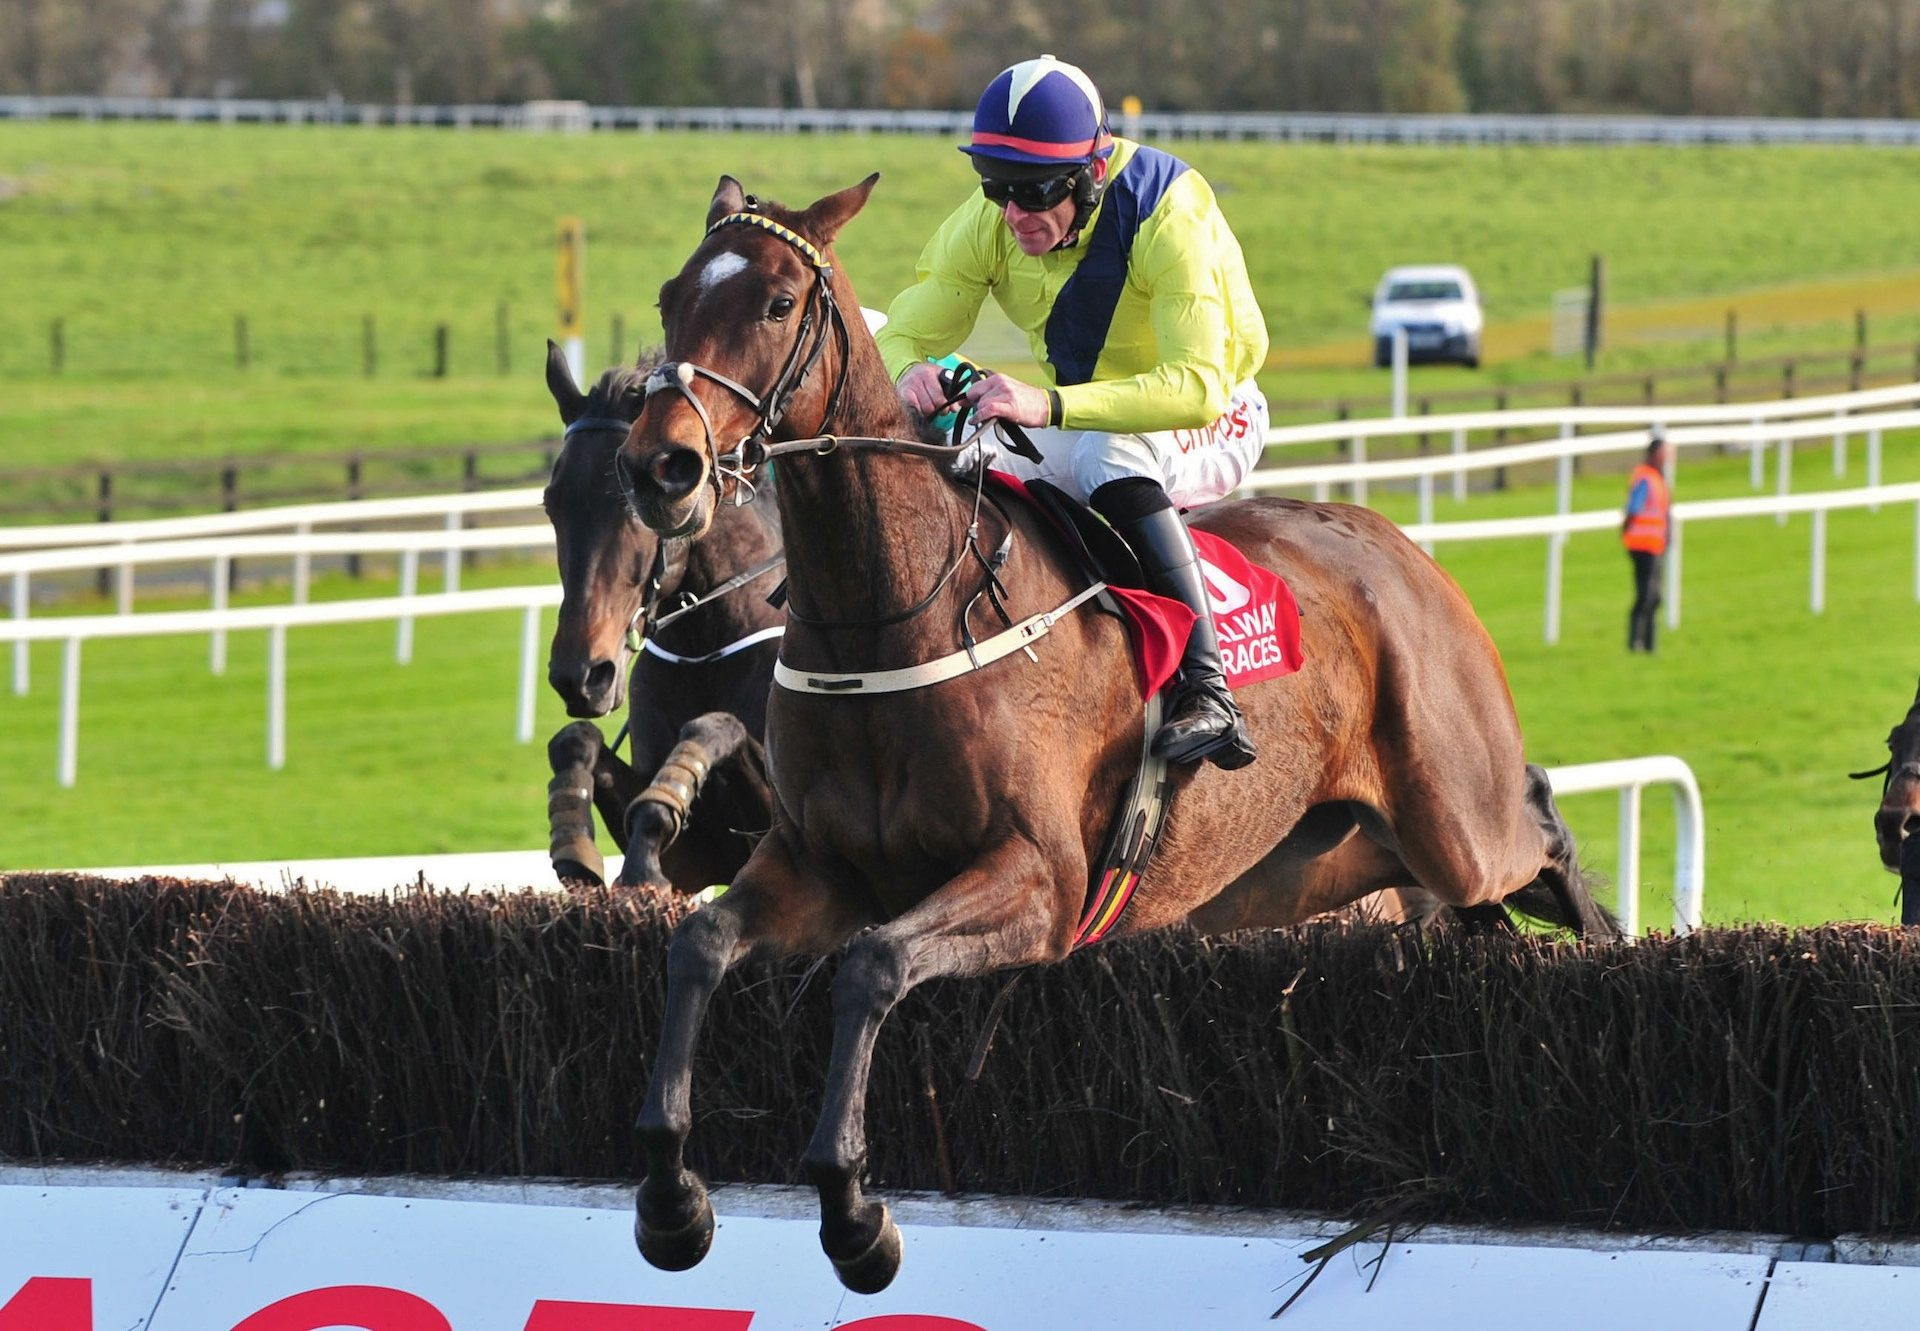 Mount Pelier (Milan) winning over fences at Galway